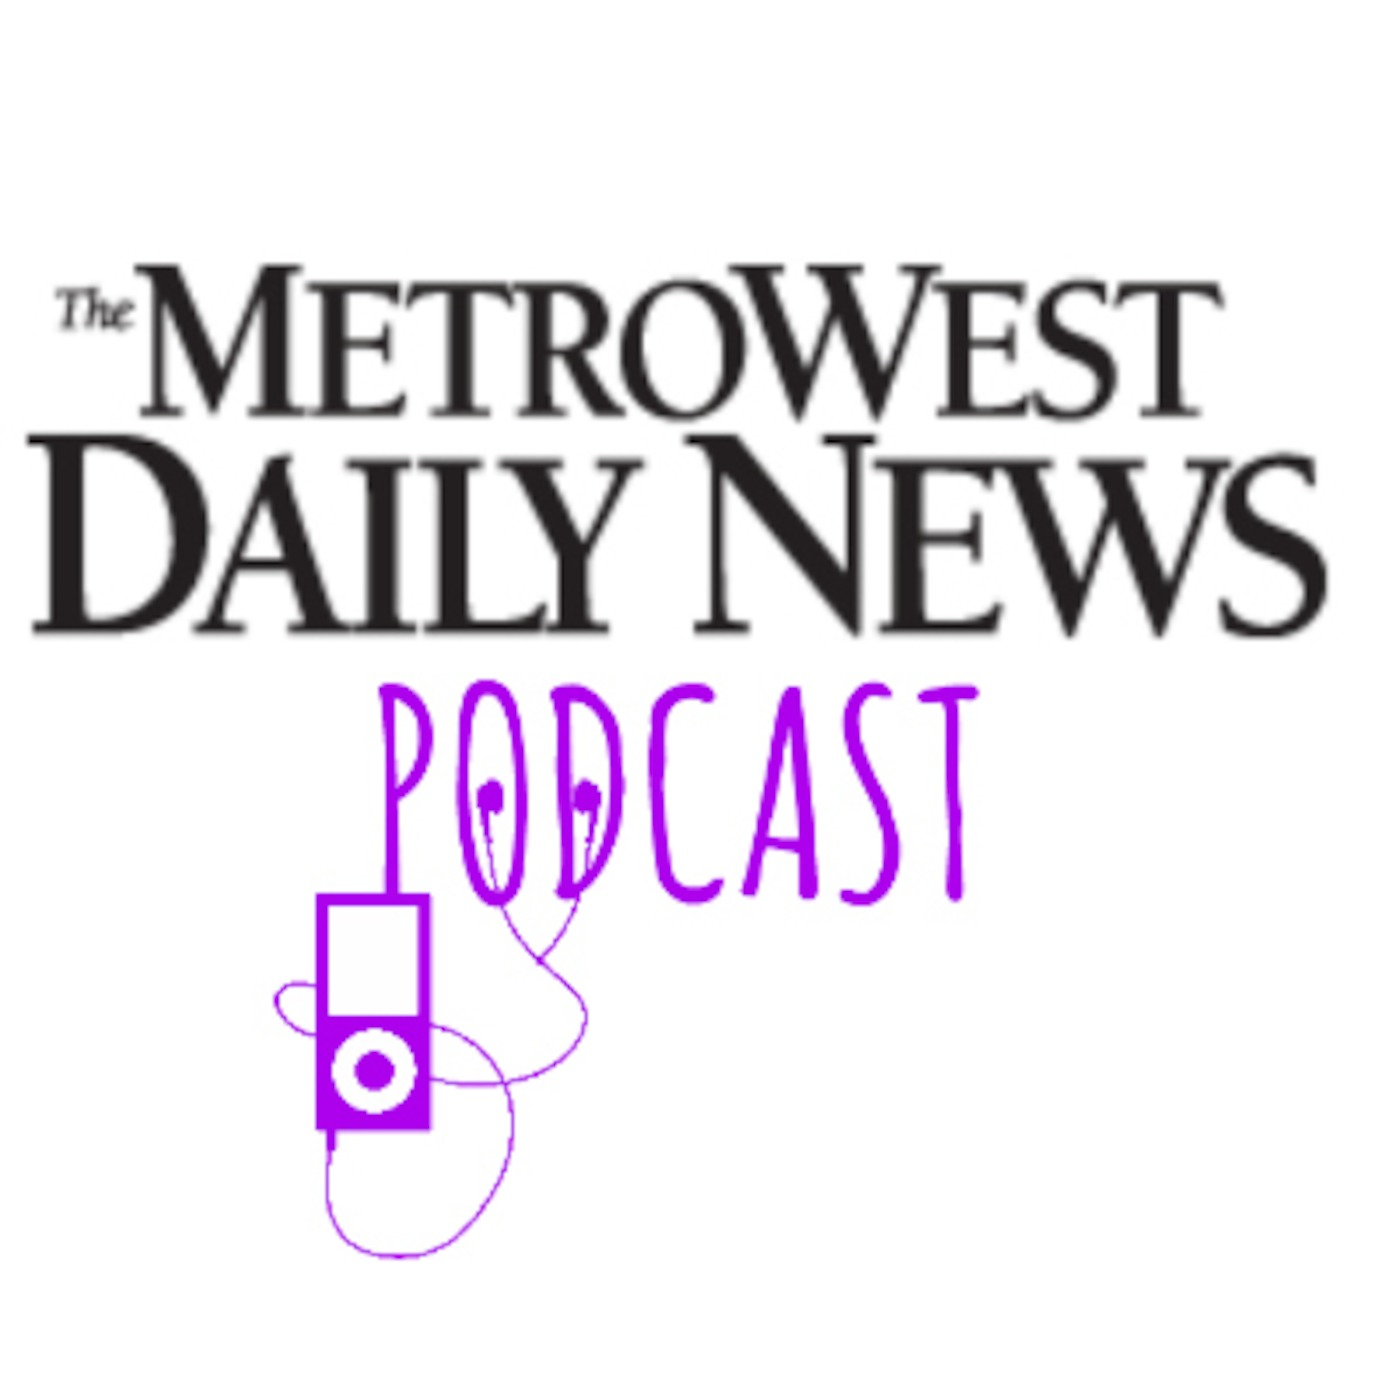 MetroWest Daily News Podcast